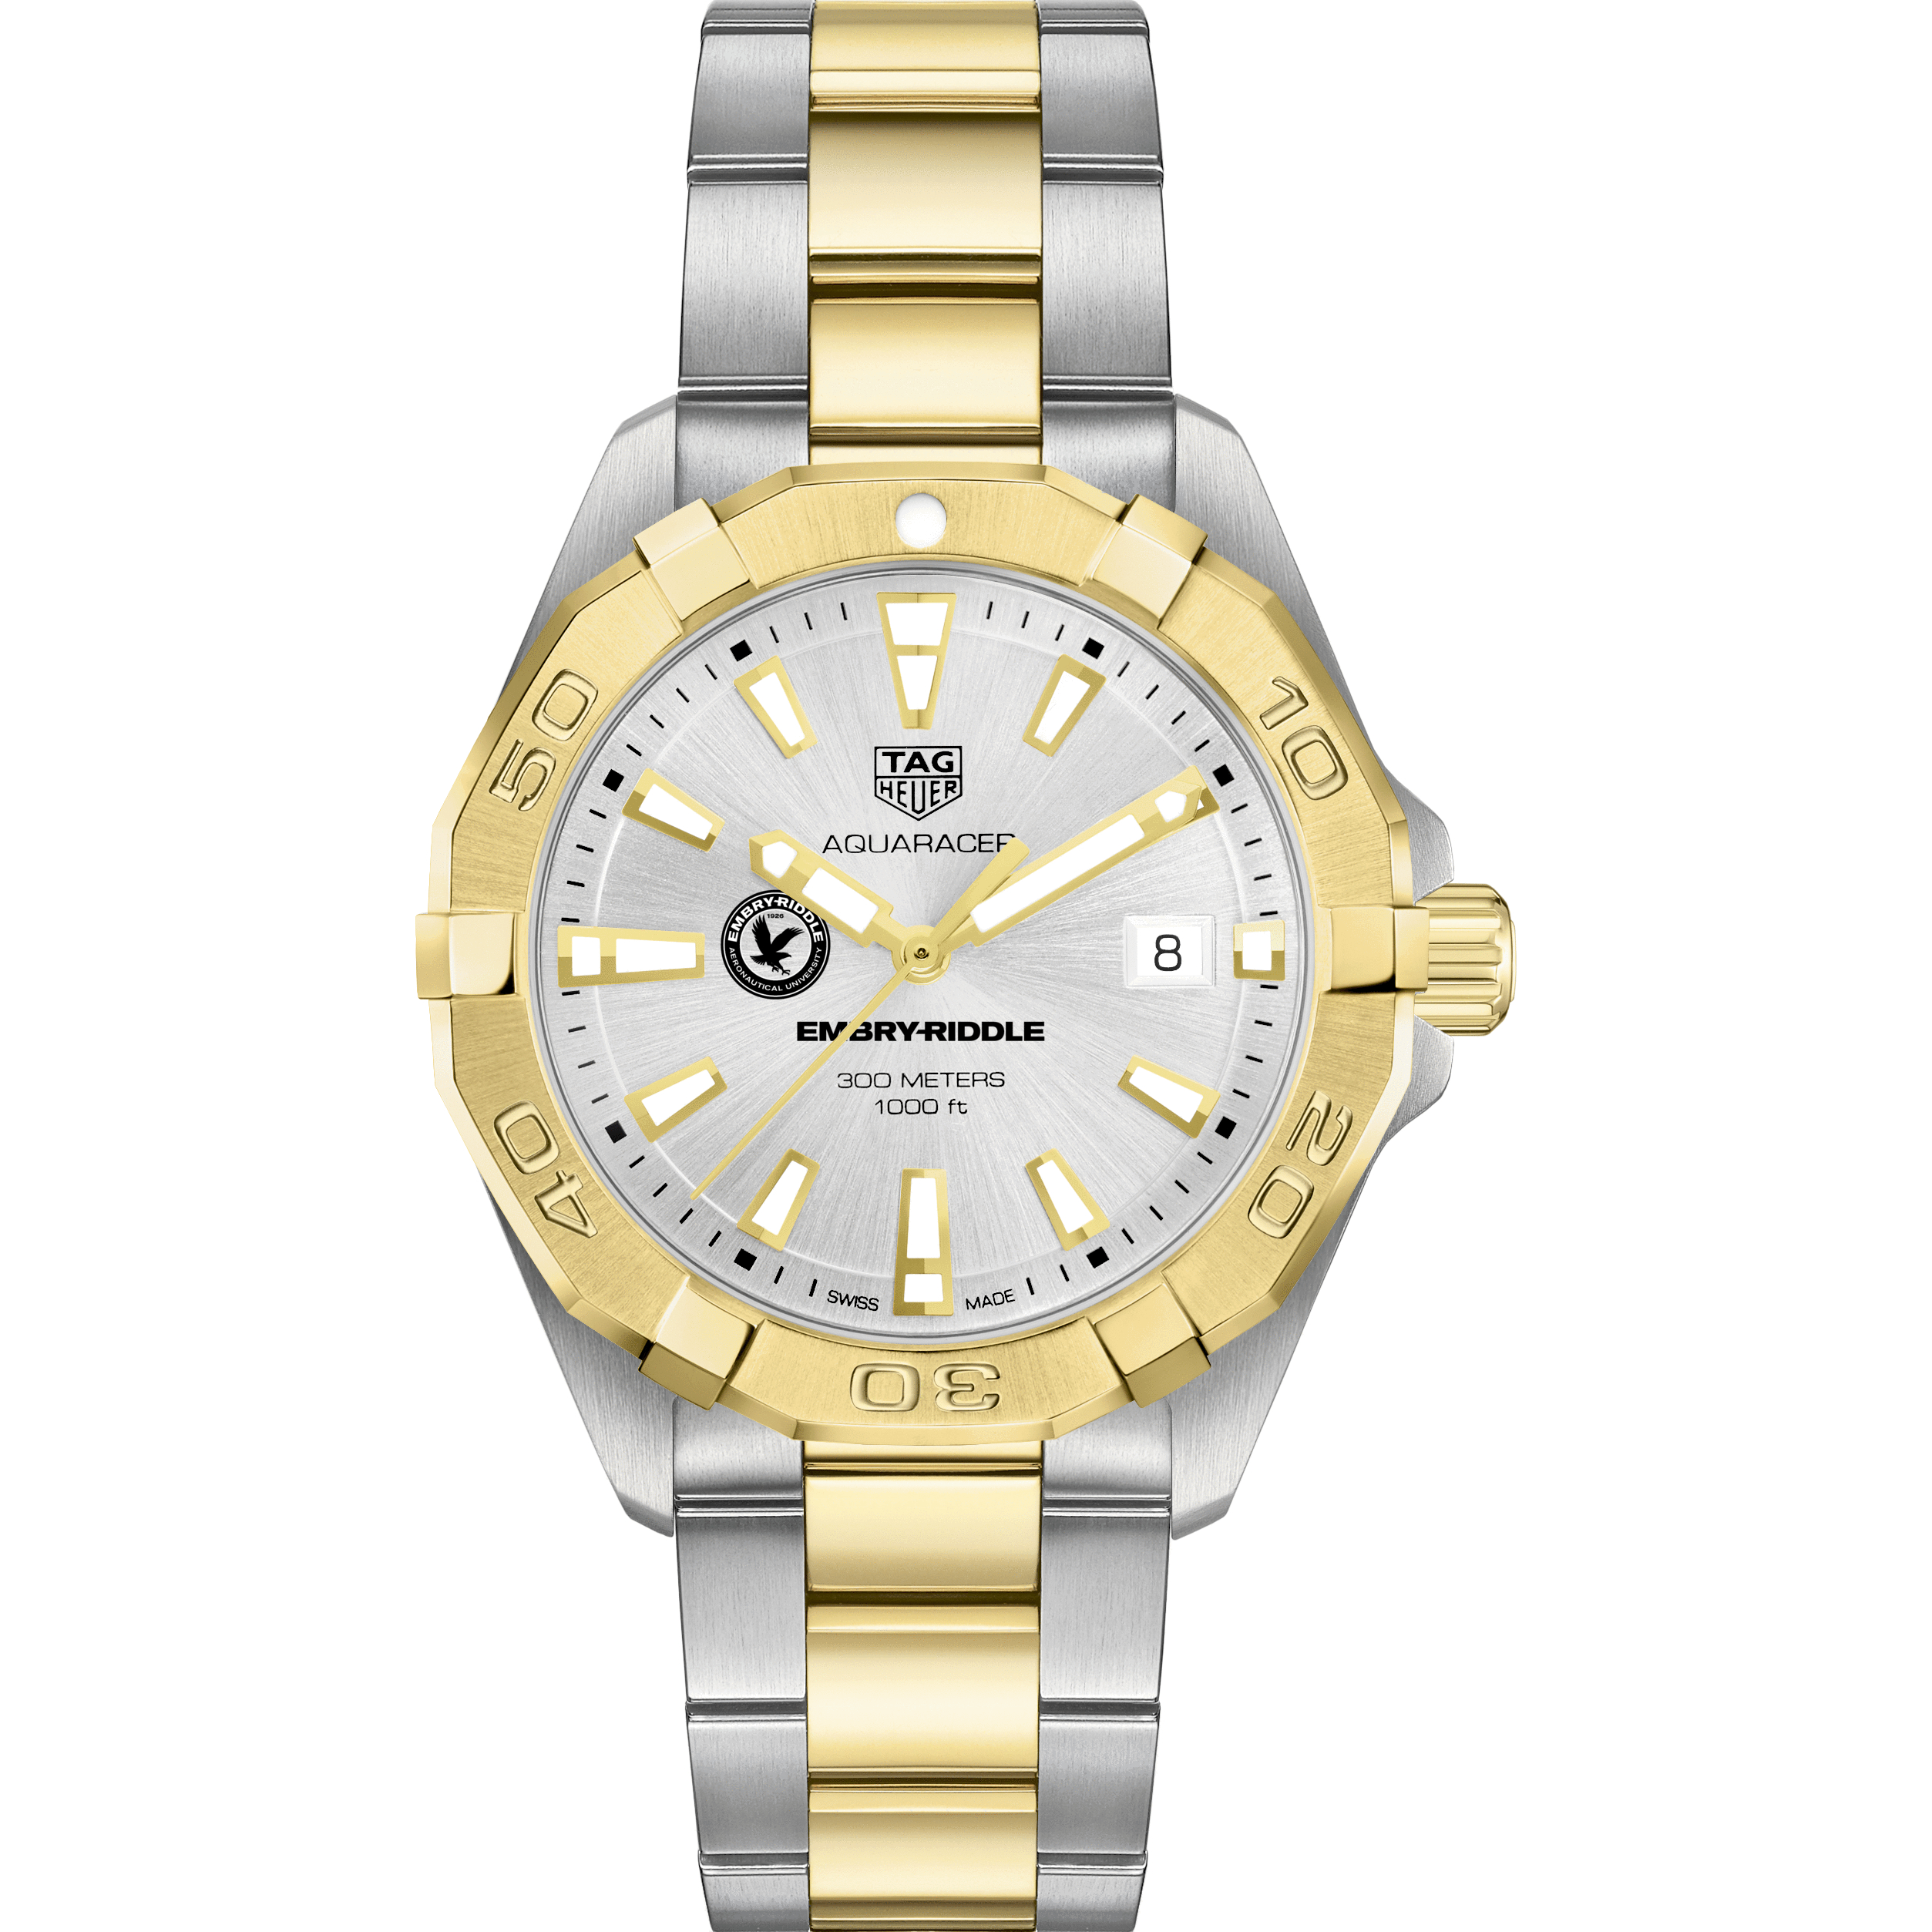 Embry-Riddle Men's TAG Heuer Two-Tone Aquaracer - Image 2